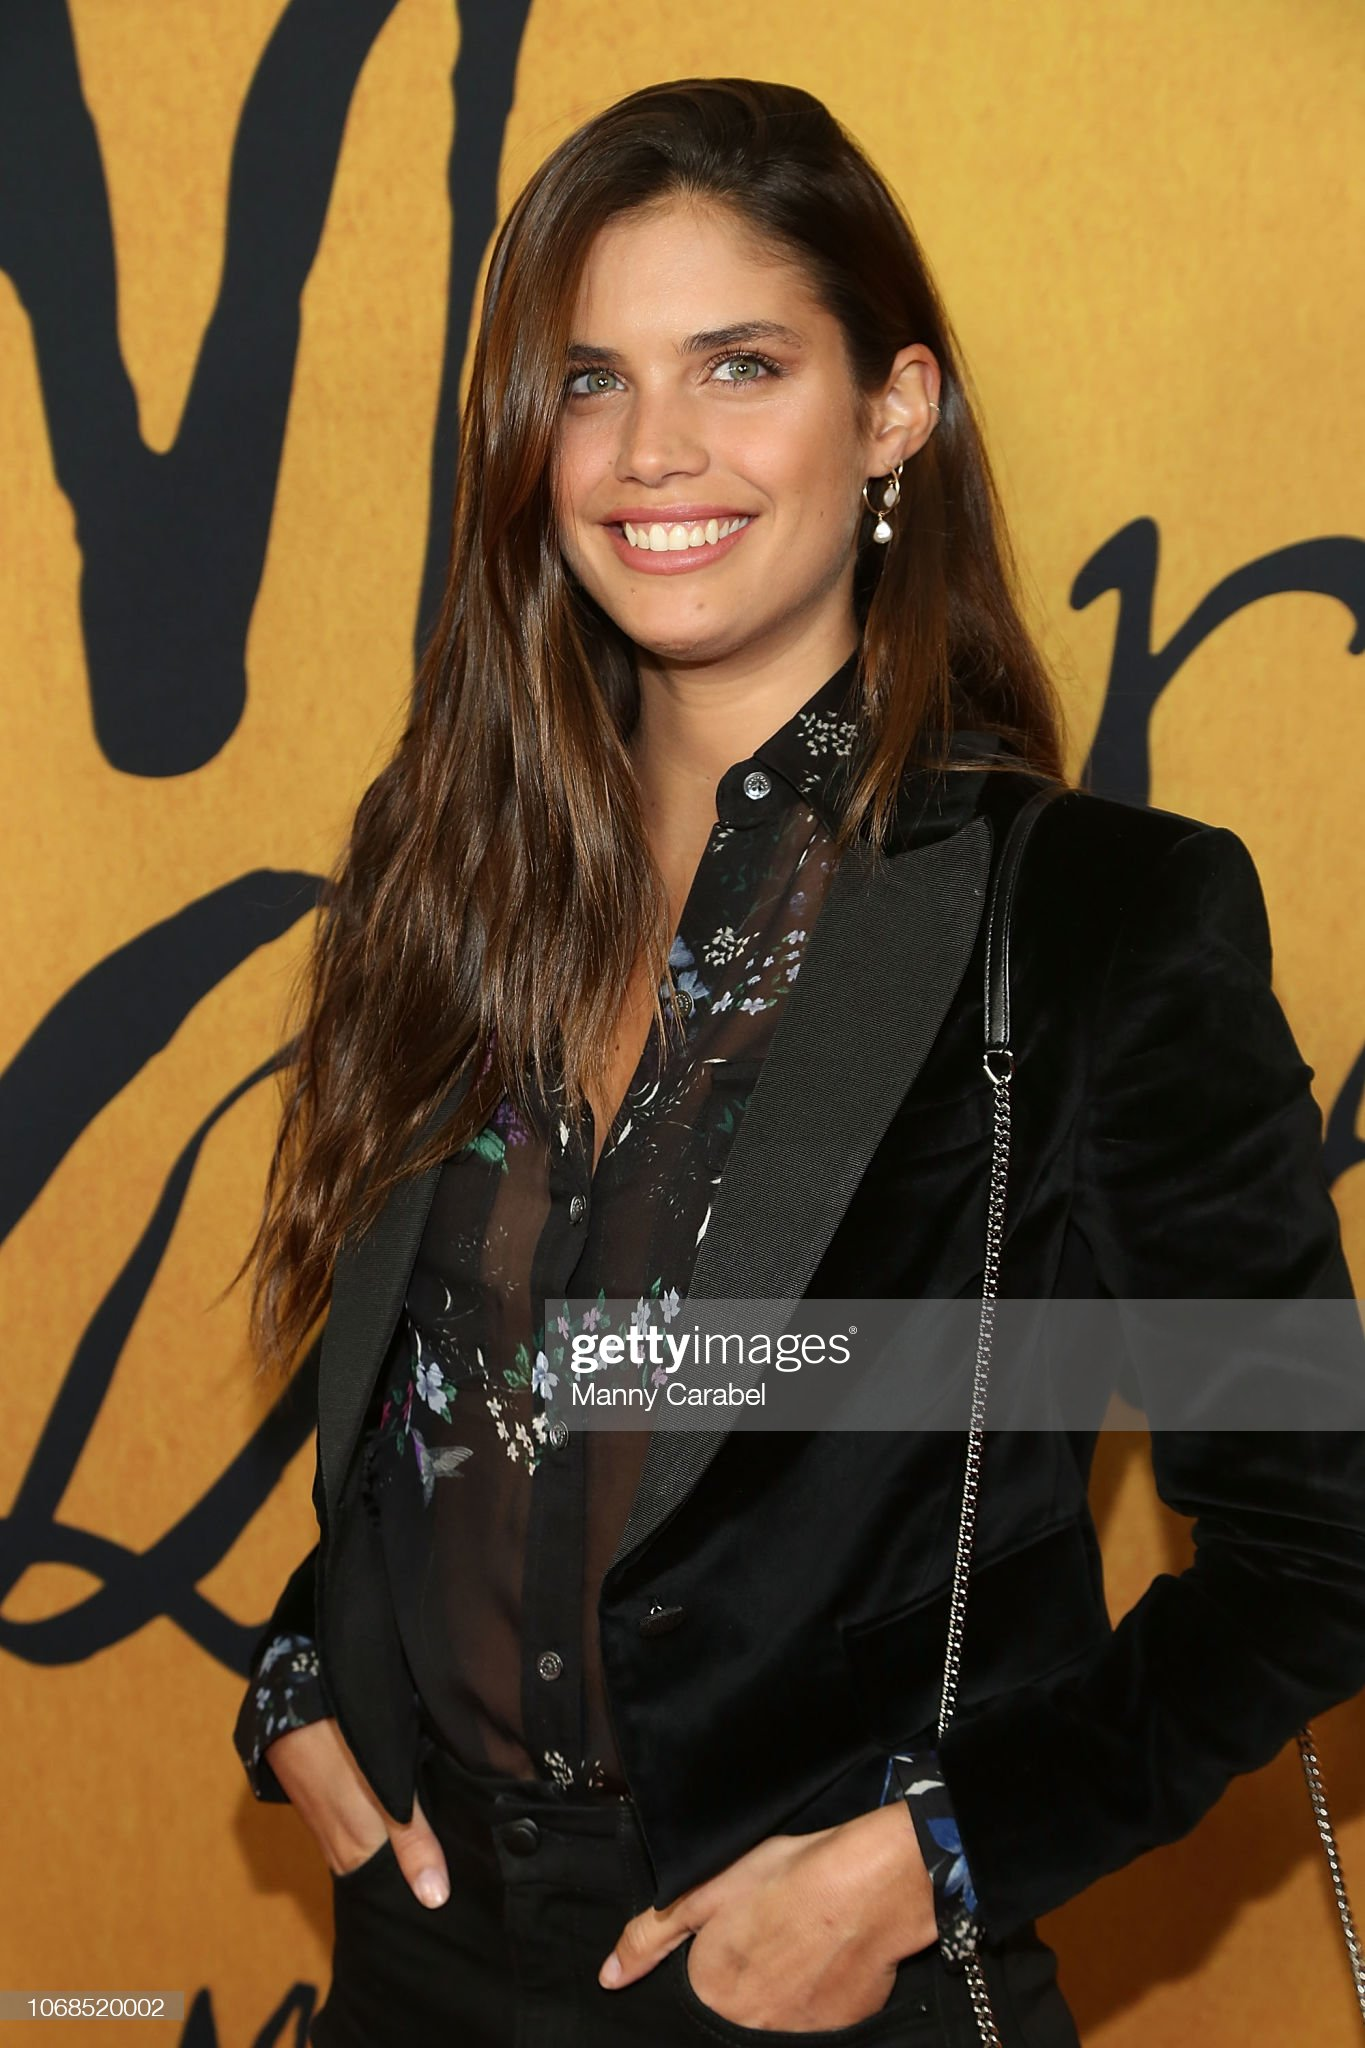 Sara Sampaio (galería de fotos) - pictures Sara-sampaio-attends-the-mary-queen-of-scots-new-york-premiere-at-the-picture-id1068520002?s=2048x2048